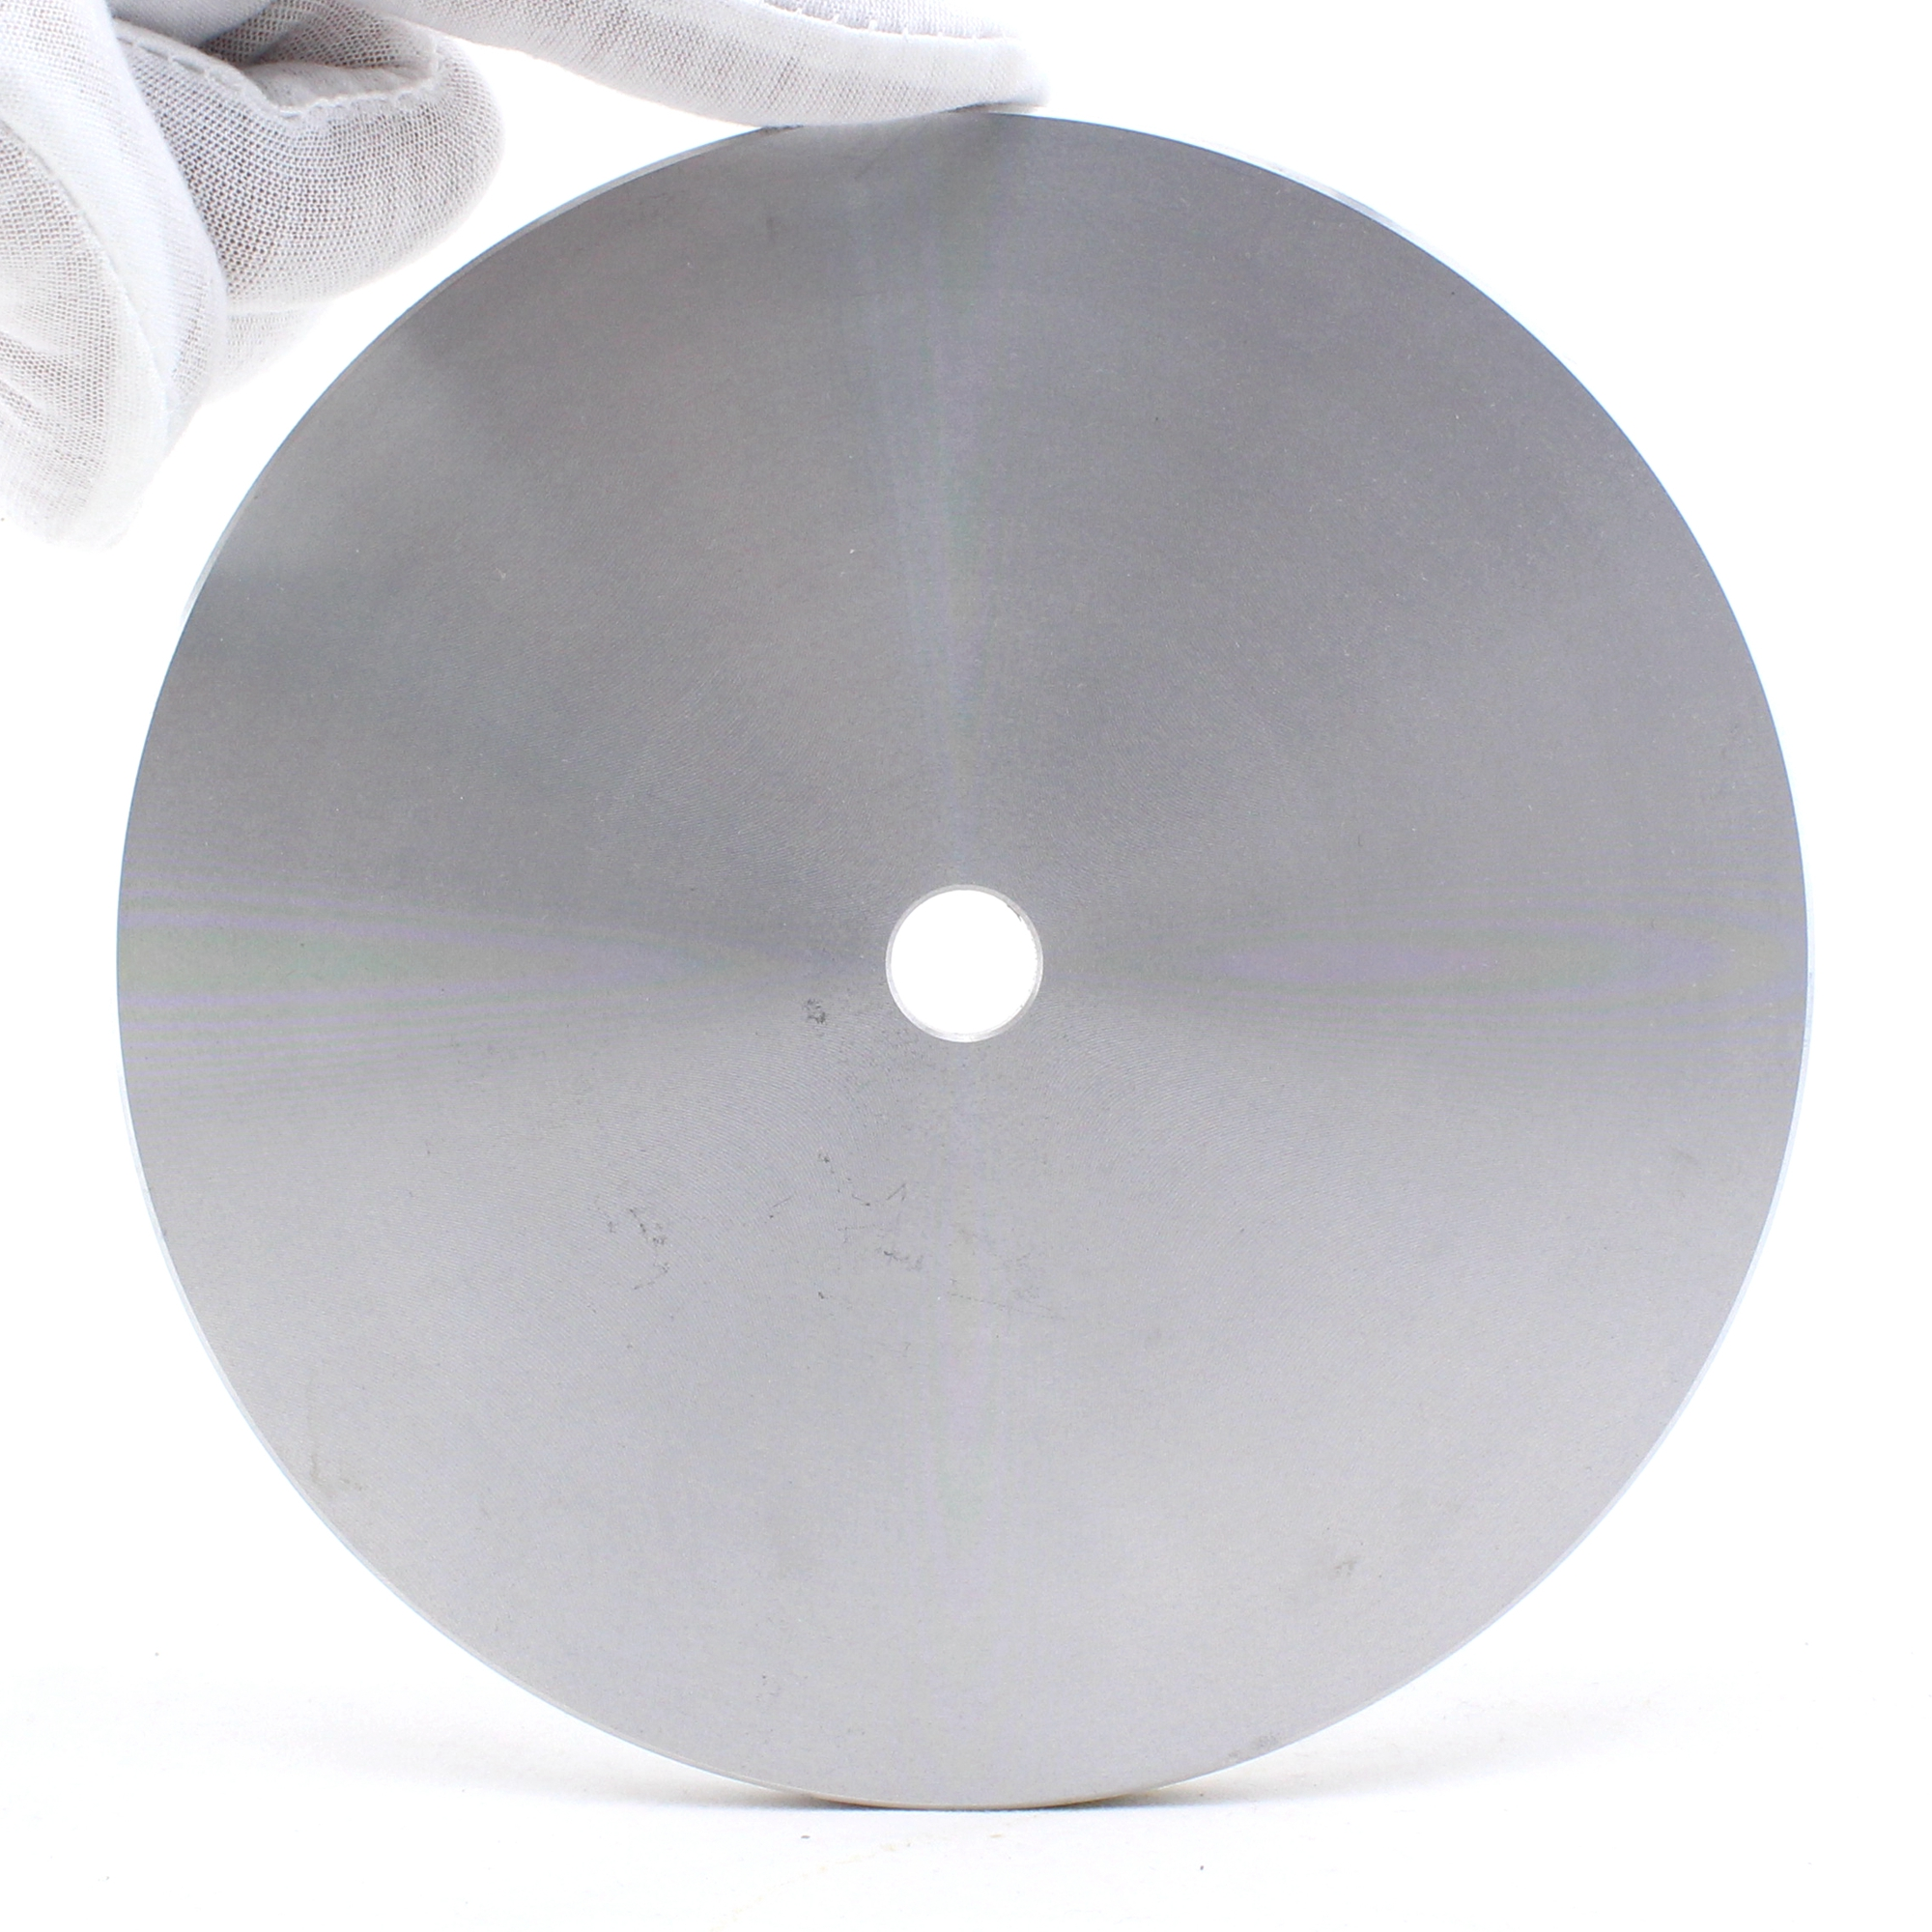 8 inch 200mm Aluminum Master Lap for Diamond coated Flat Lap Disk Grinding ILOVETOOL 16 inch 400mm grit 240 diamond coated flat lap disk grinding polish wheel